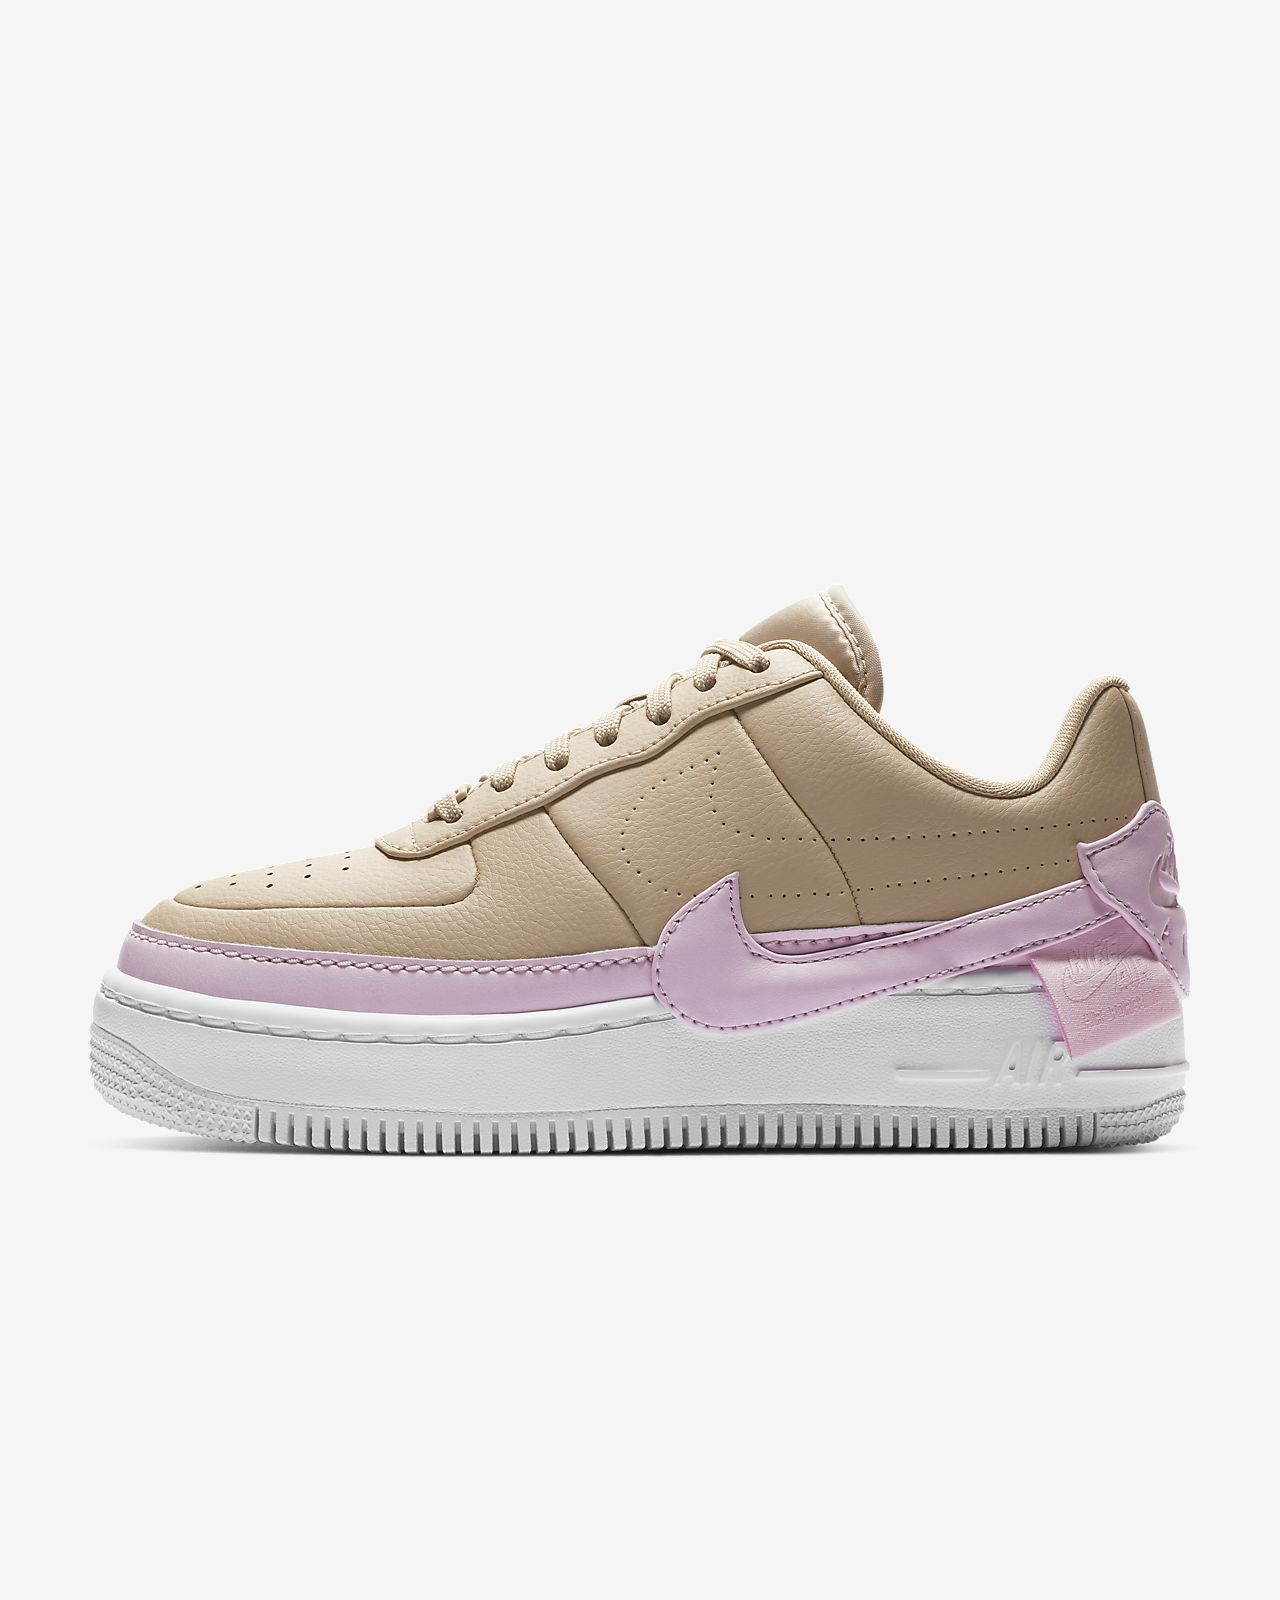 c1edda552b63 Nike Air Force 1 Jester XX Women s Shoe. Nike.com CA